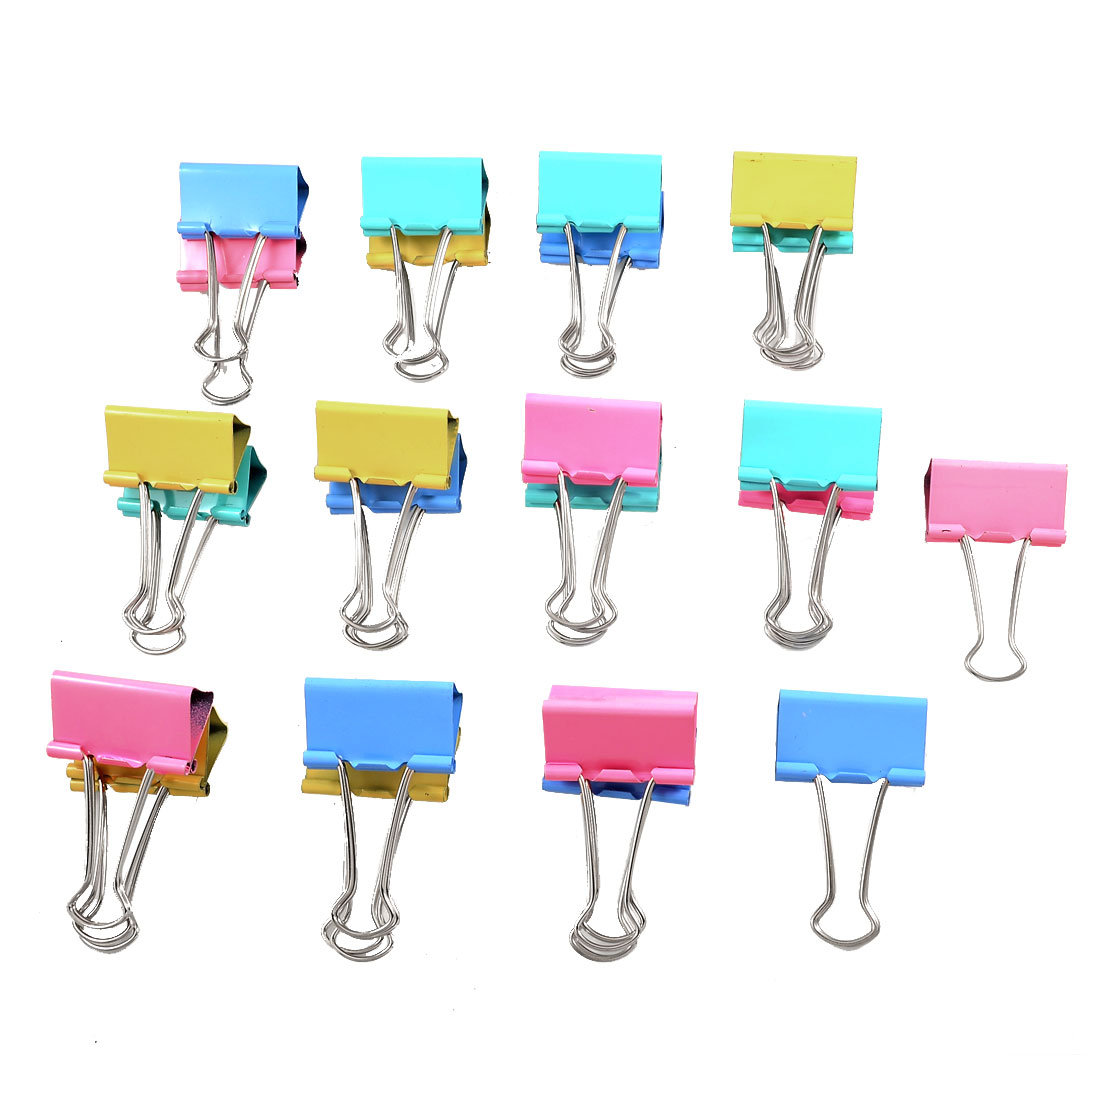 24 Pcs Metal Assorted Color Document File Binder Clips 41mm Width